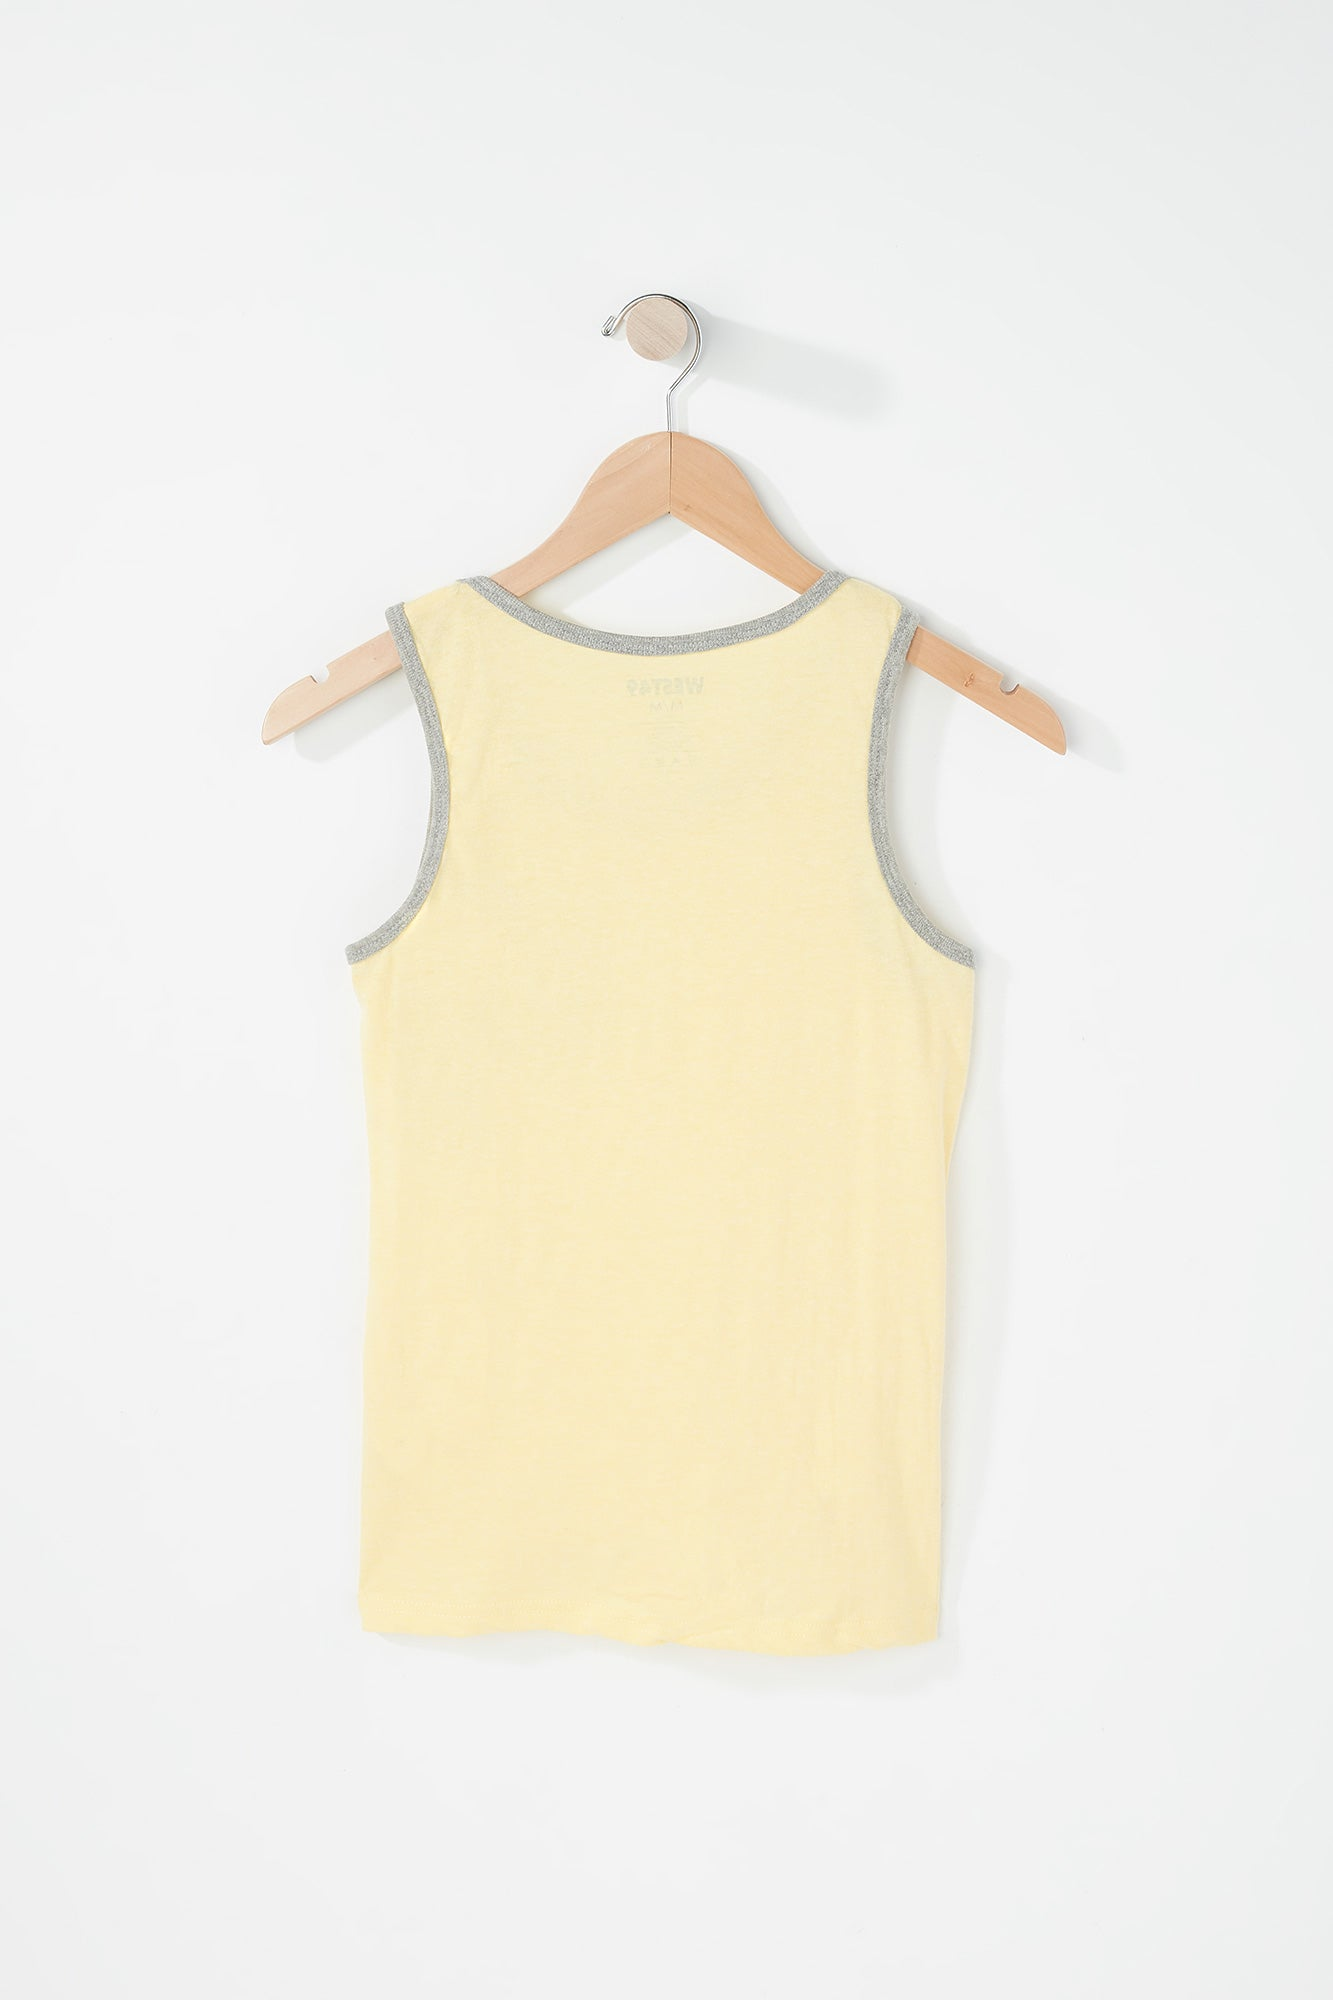 West 49 Youth Grey Trim Yellow Tank